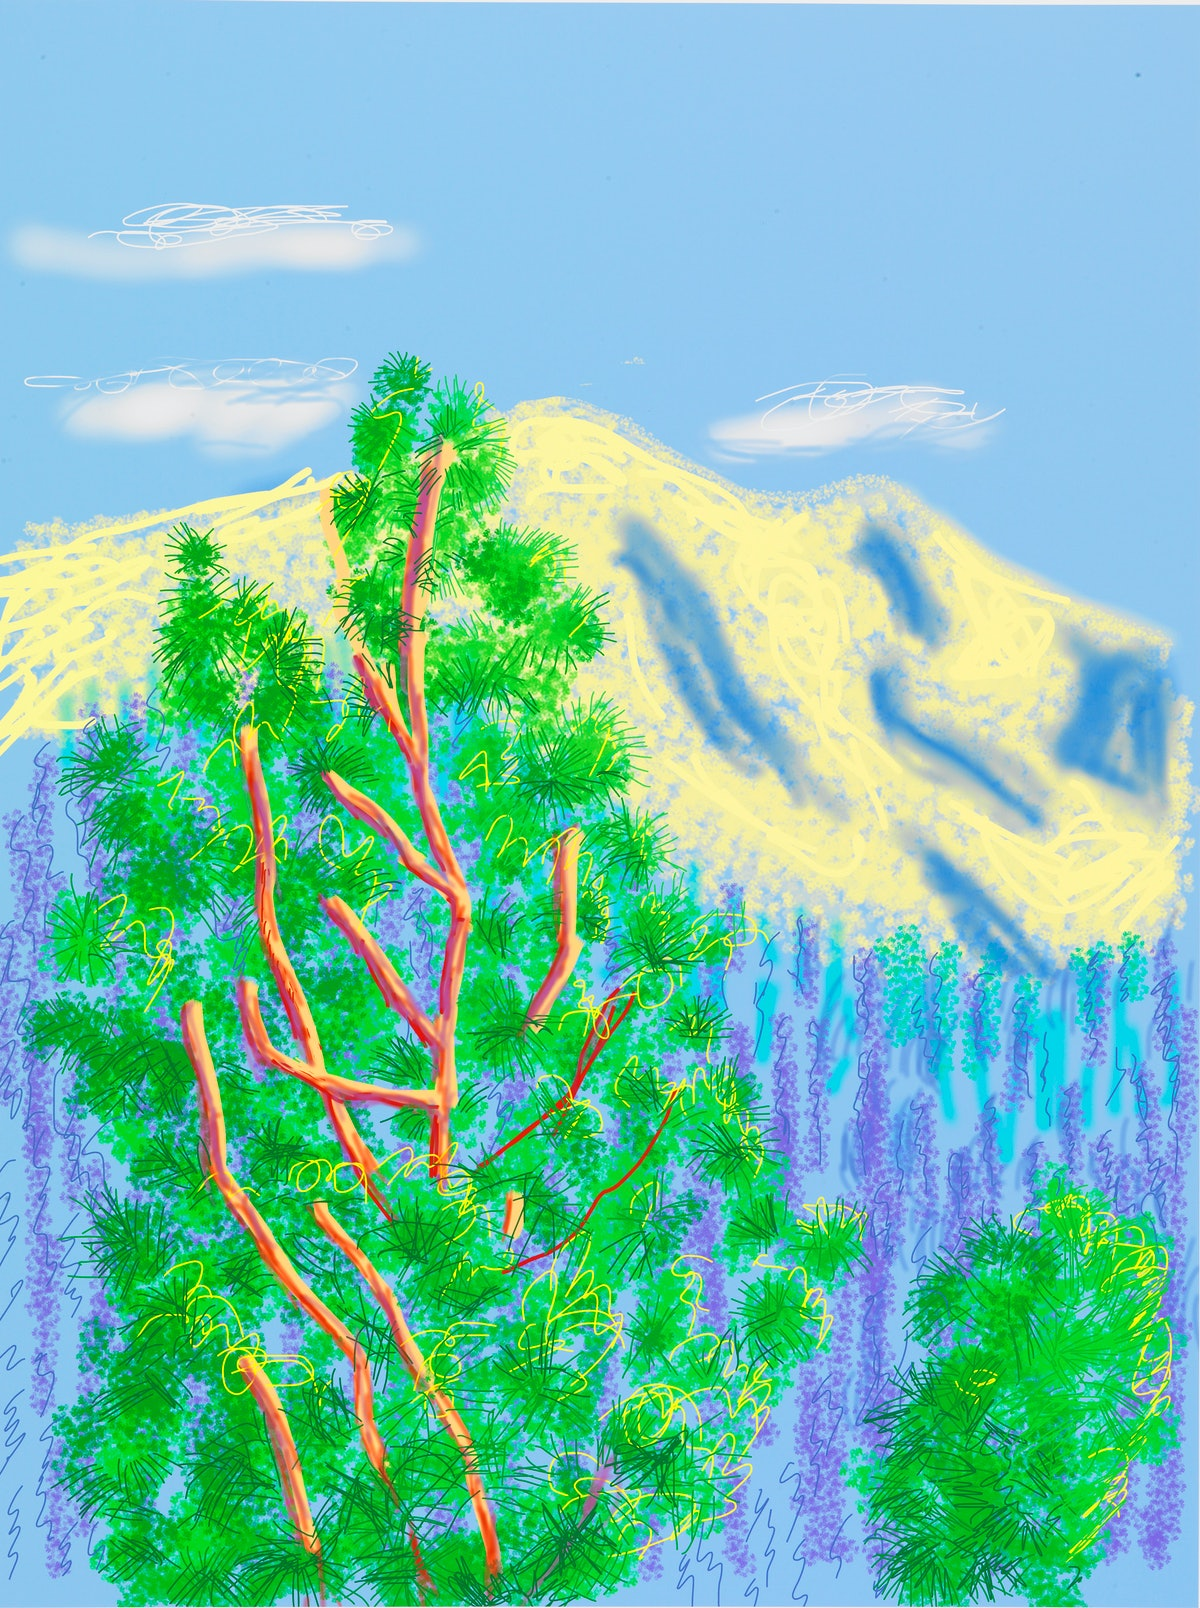 """""""Untitled No. 9"""" from """"The Yosemite Suite"""" 2010"""